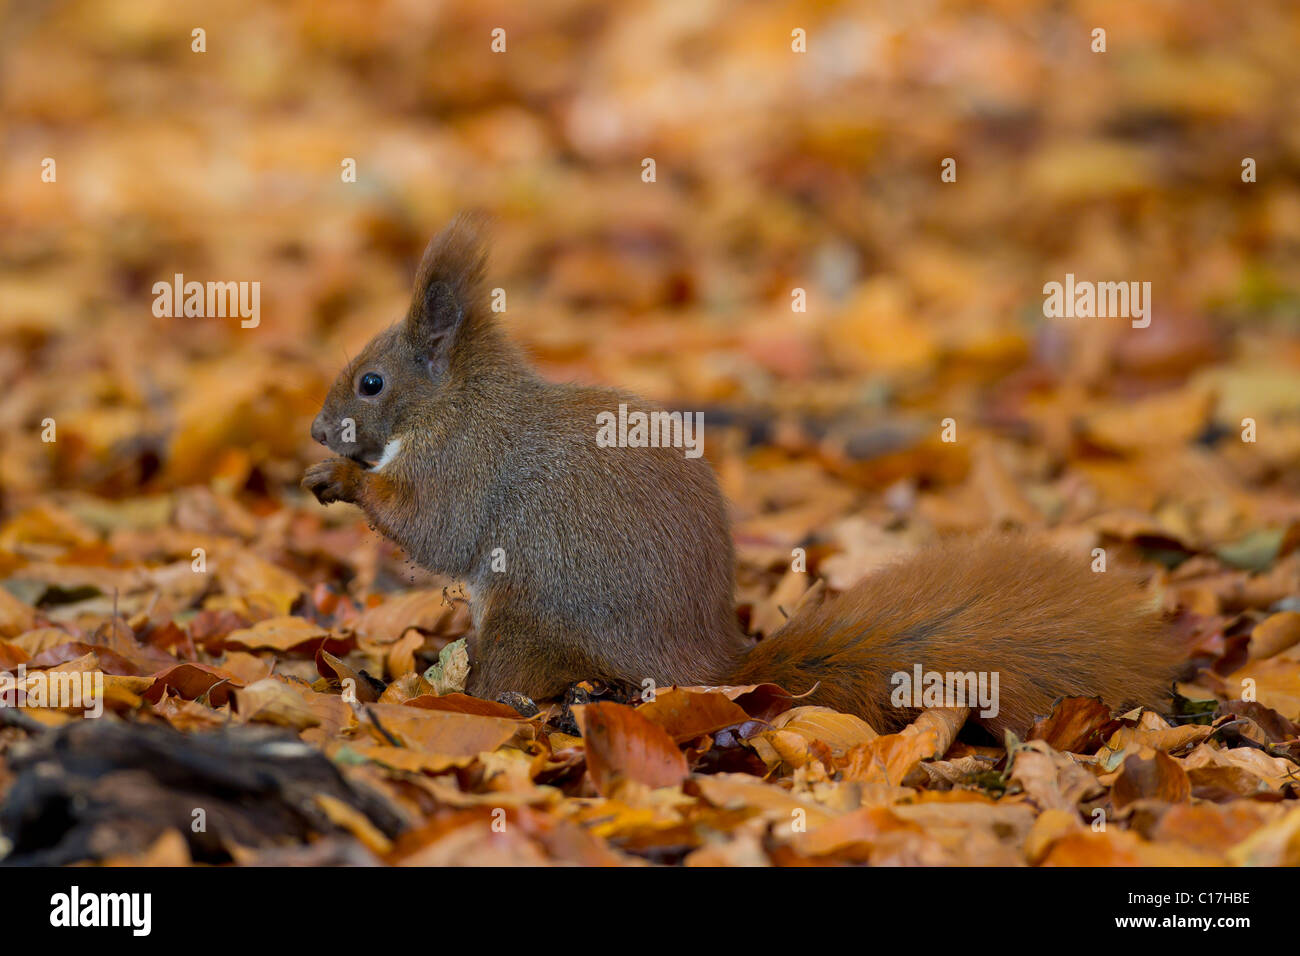 Eurasian red squirrel (Sciurus vulgaris) eating nut on the ground in autumn forest, Germany - Stock Image